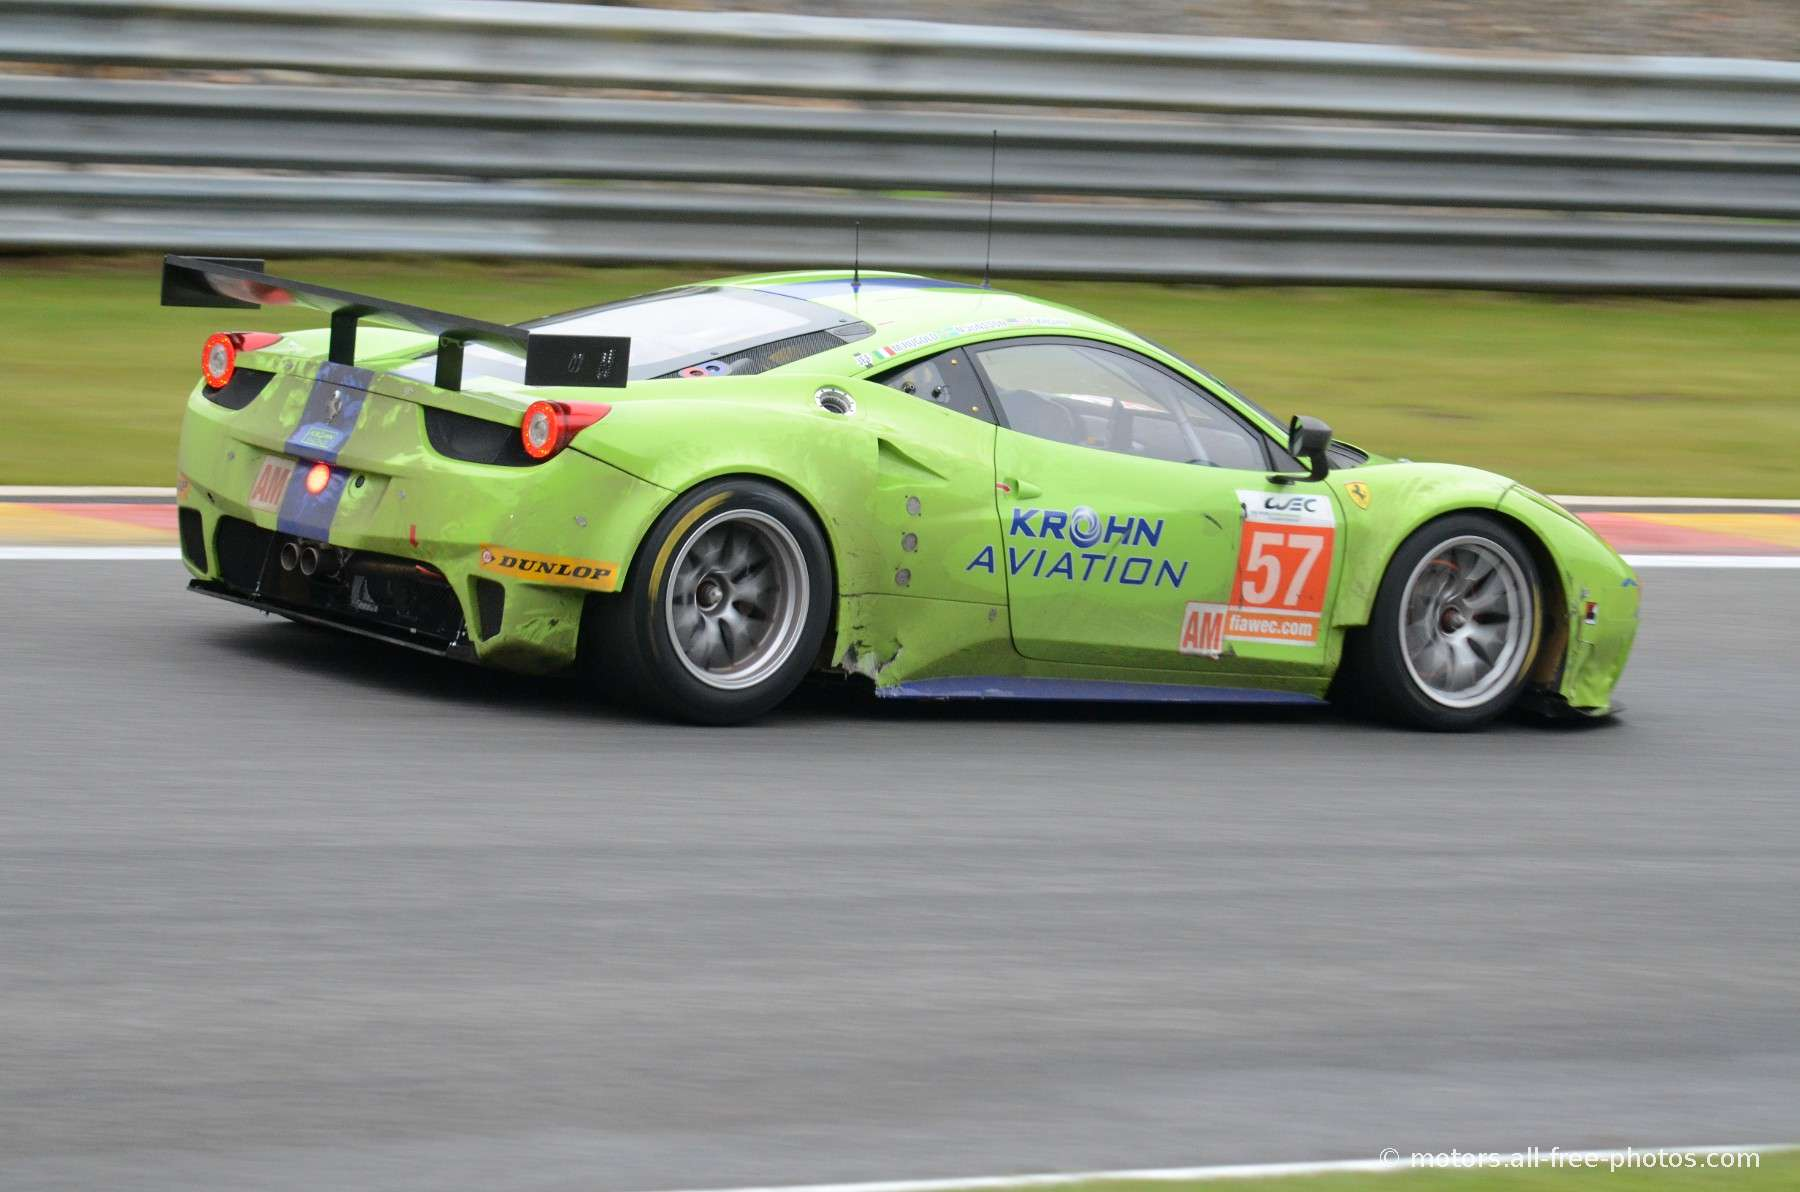 Ferrari 458 Italia - Team Krohn Racing